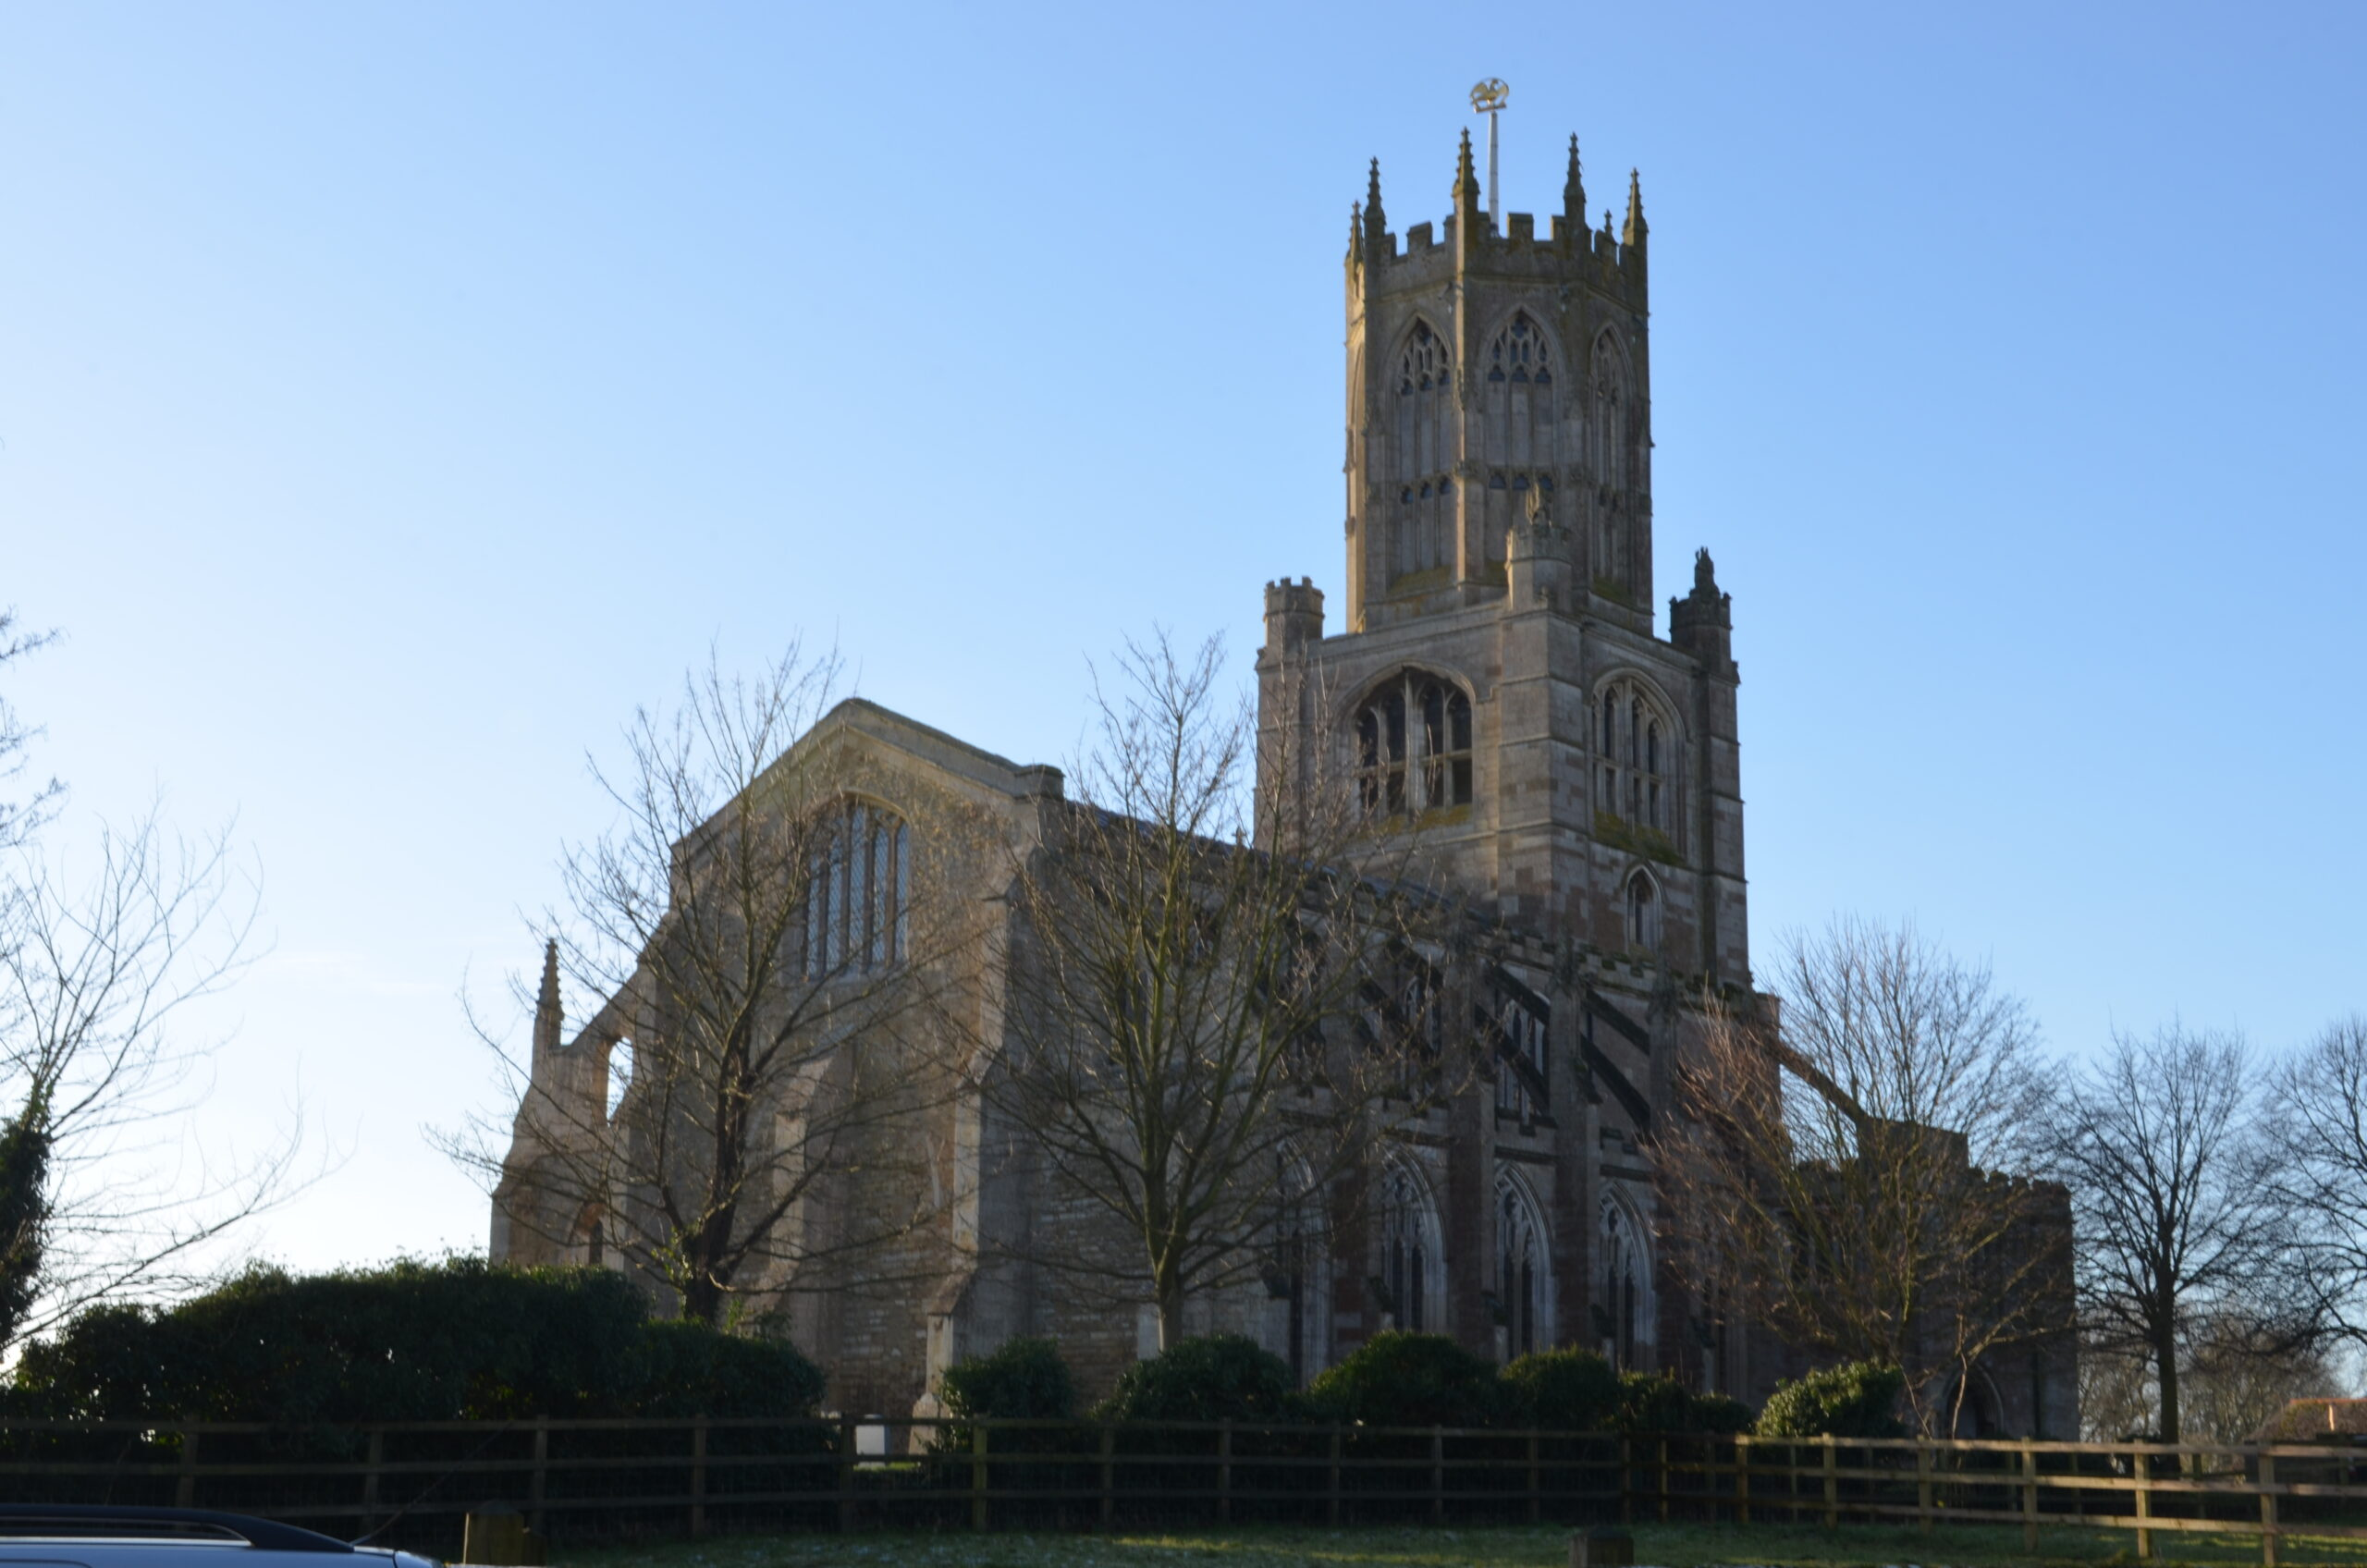 The church of St. Mary and All Saints, Fotheringhay